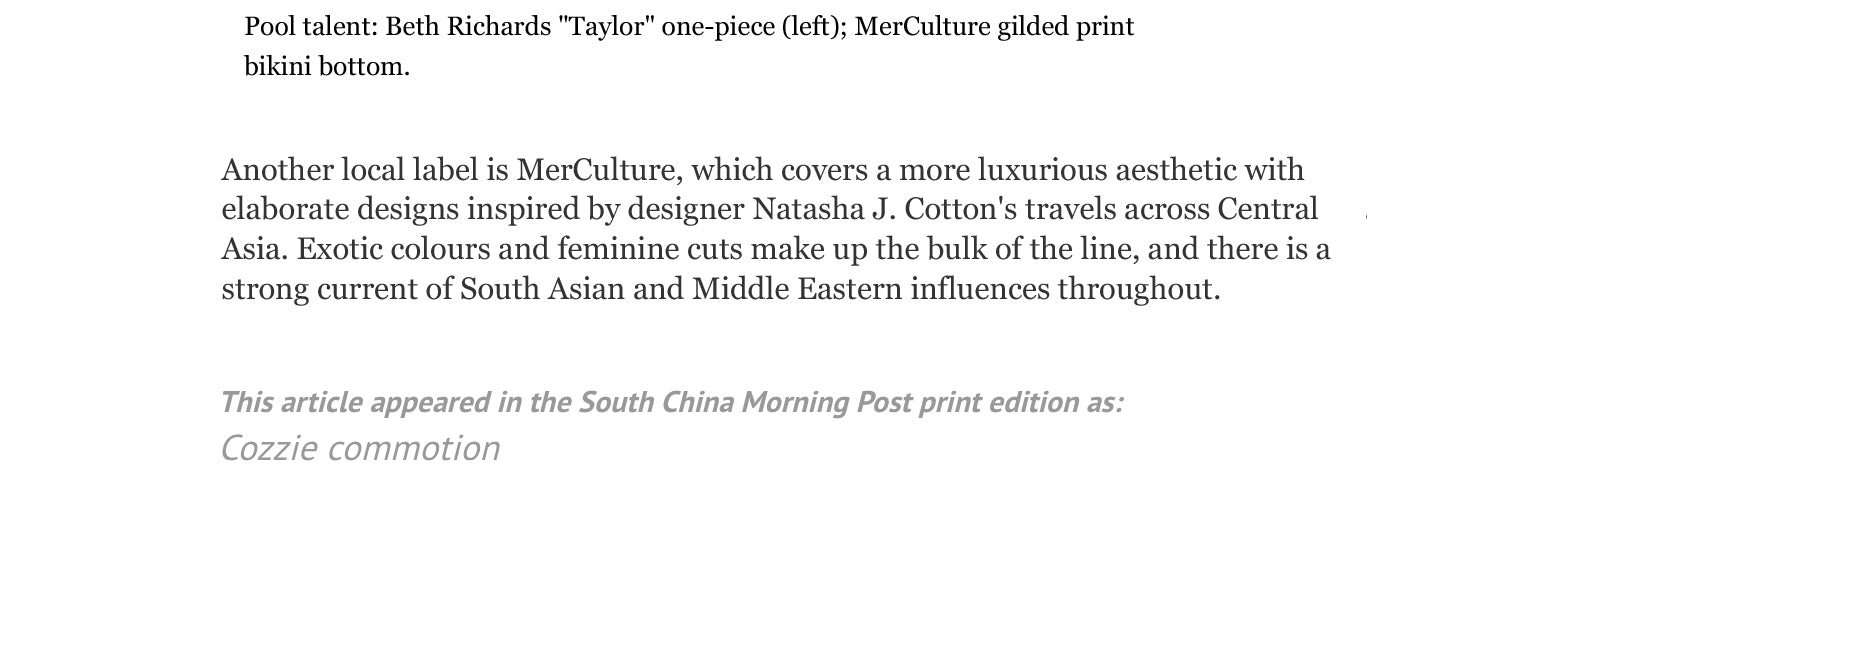 48 Hours by South China Morning Post article | Press | Hong Kong | Mer Culture swimwear | the hottest beachwear for summer